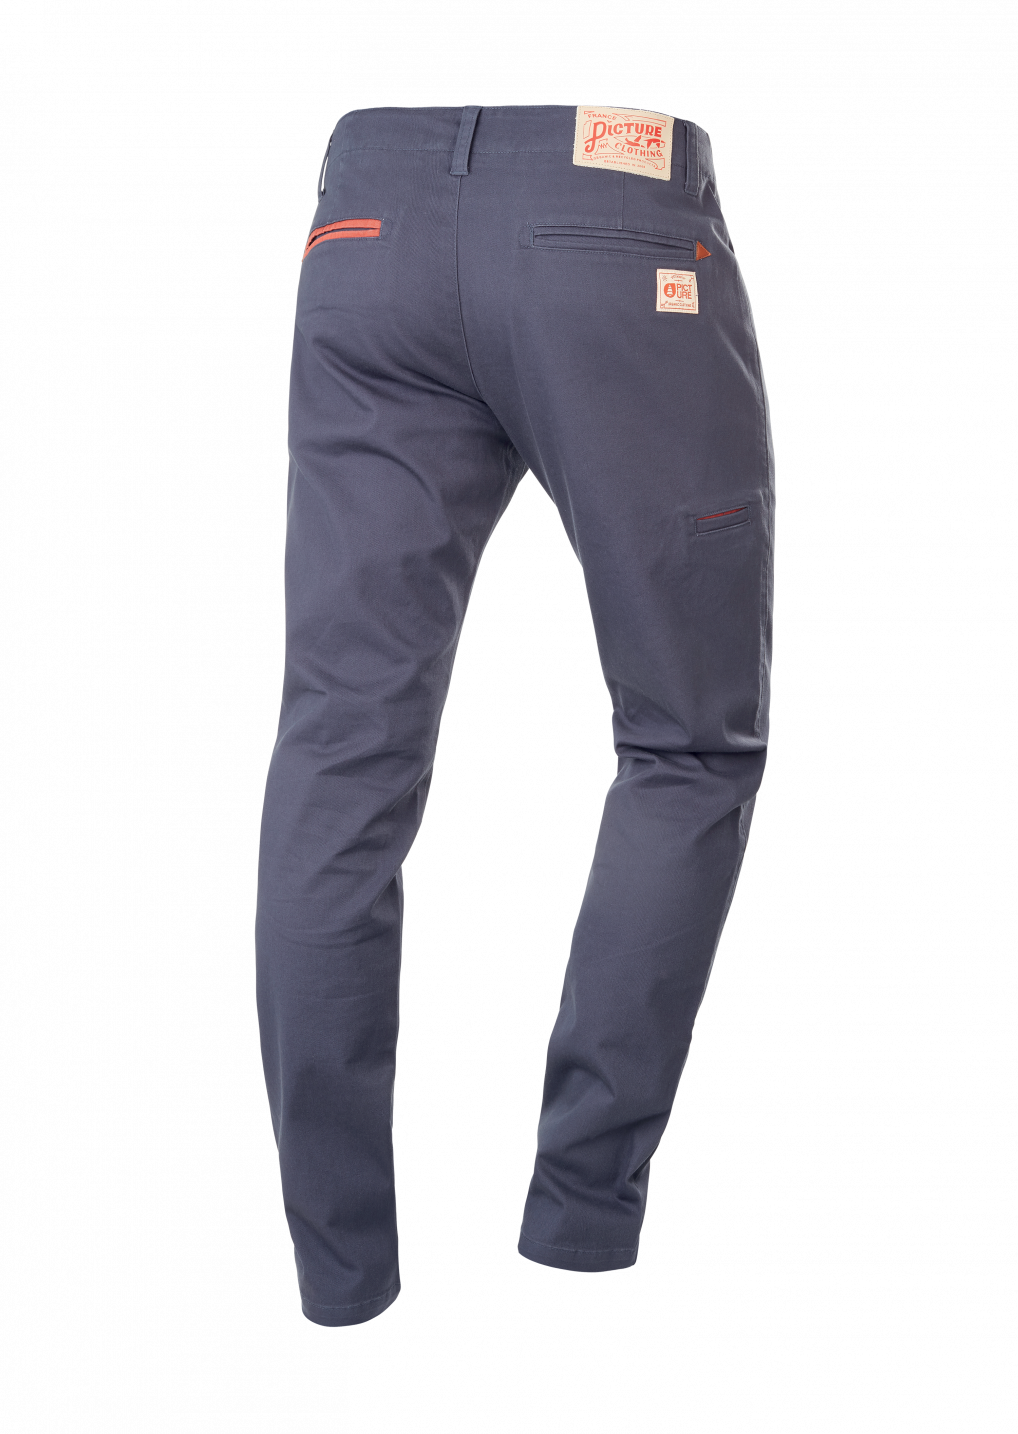 Pantalon Picture Feodor Dark Blue